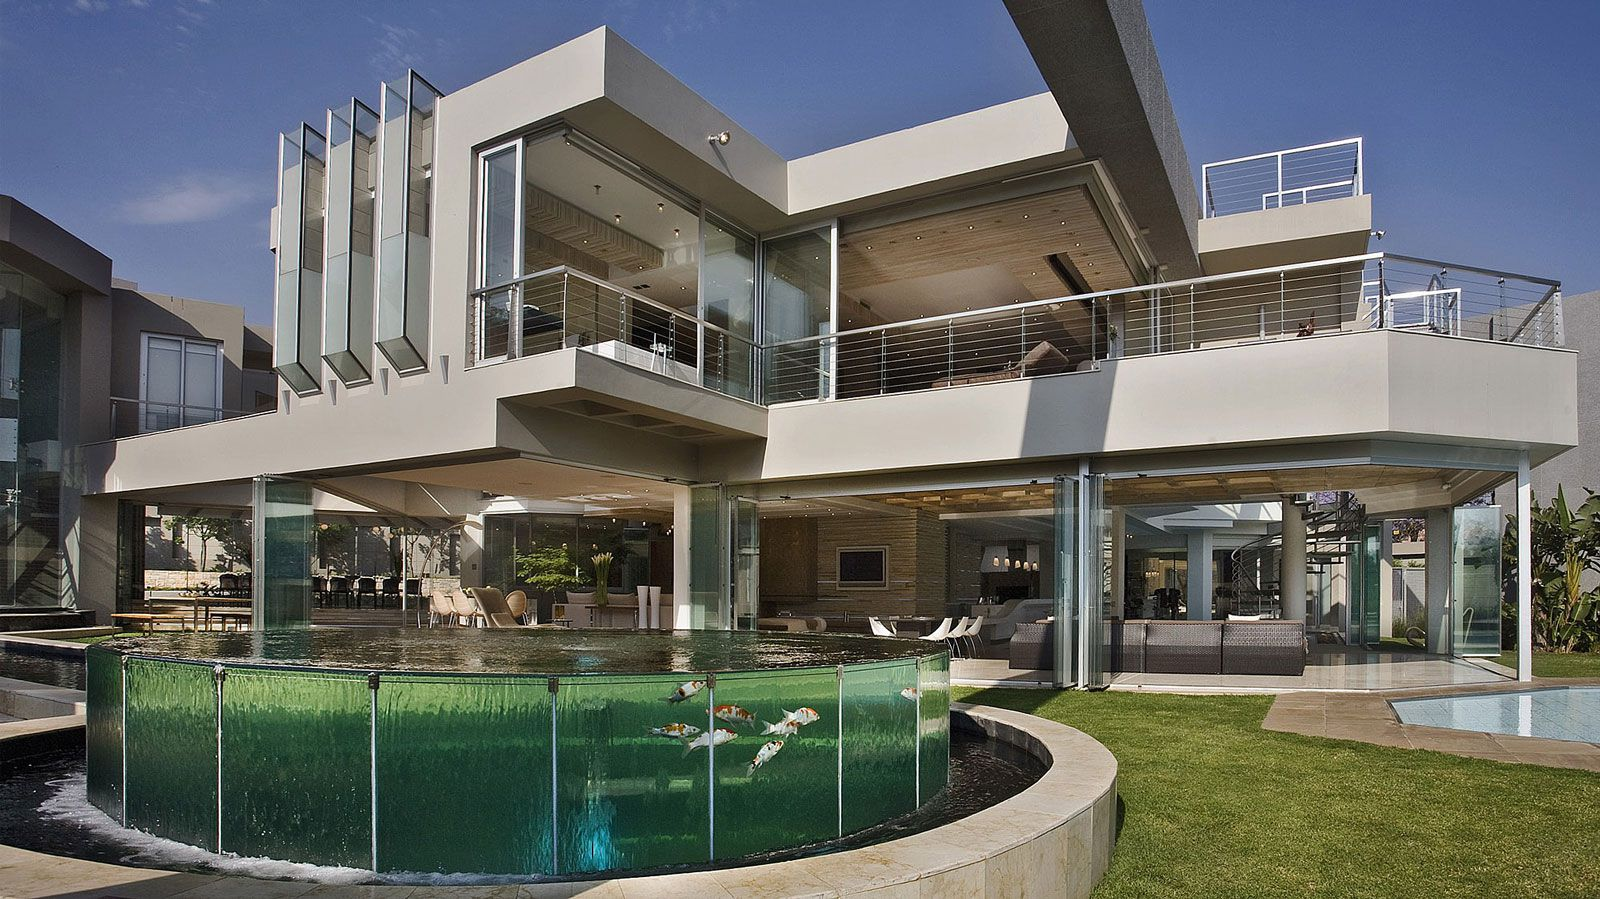 The Glass House by Nico Van Der Meulen Architects